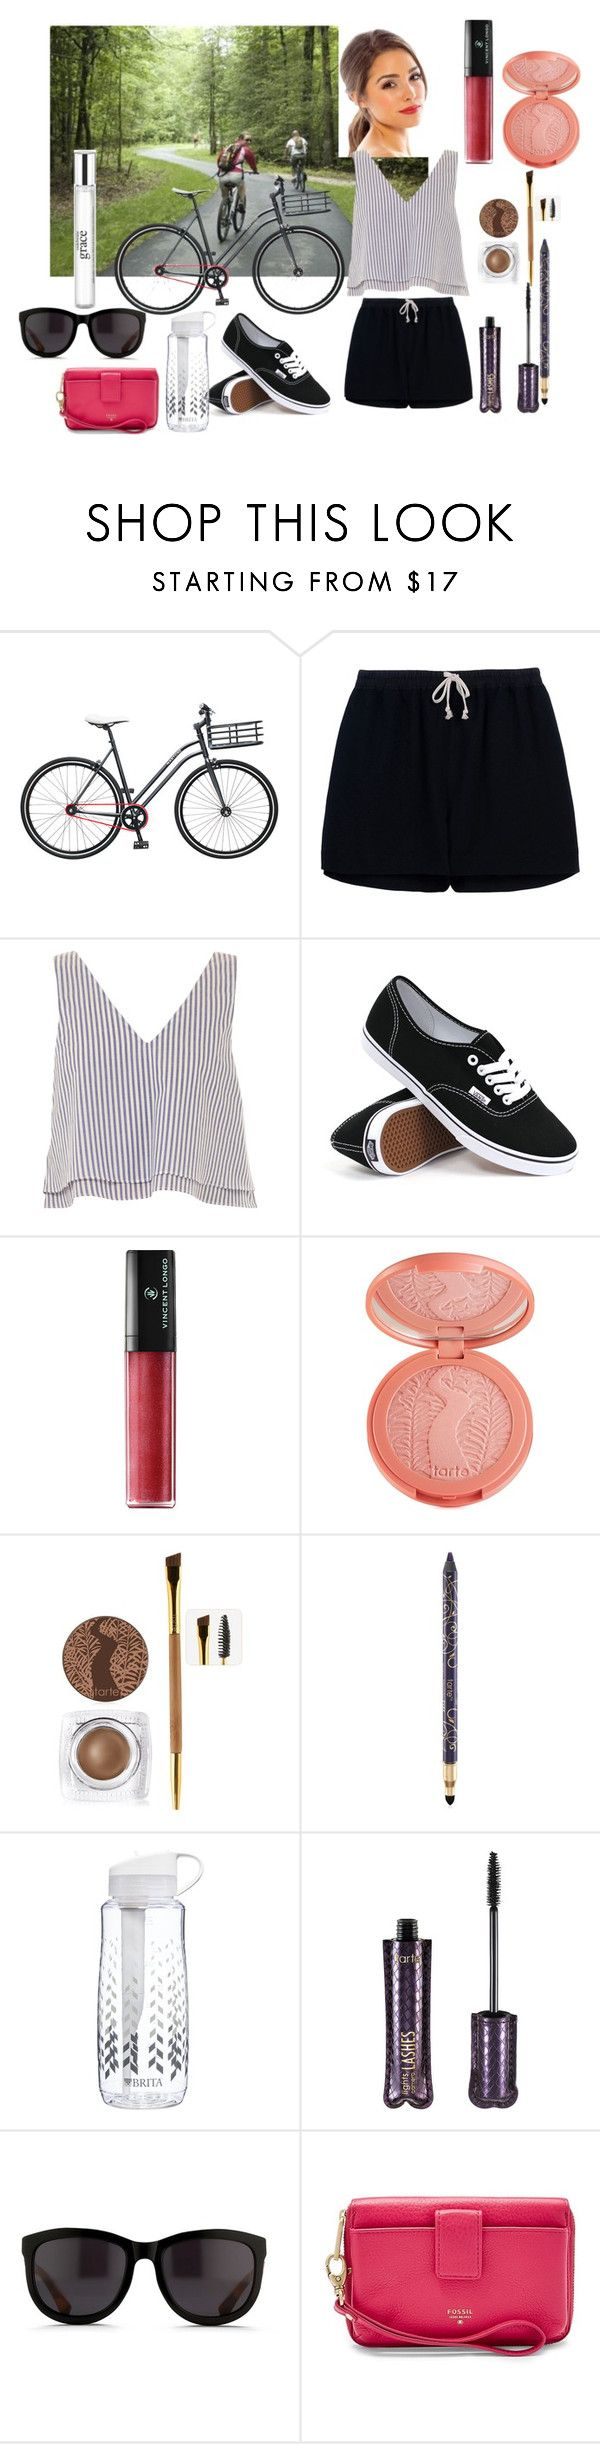 """""""Untitled #199"""" by vintagelady52 ❤ liked on Polyvore featuring Martone Cycling Co., Rick Owens, Apiece Apart, Vans, Vincent Longo, tarte, Brita, The Row, FOSSIL and philosophy"""